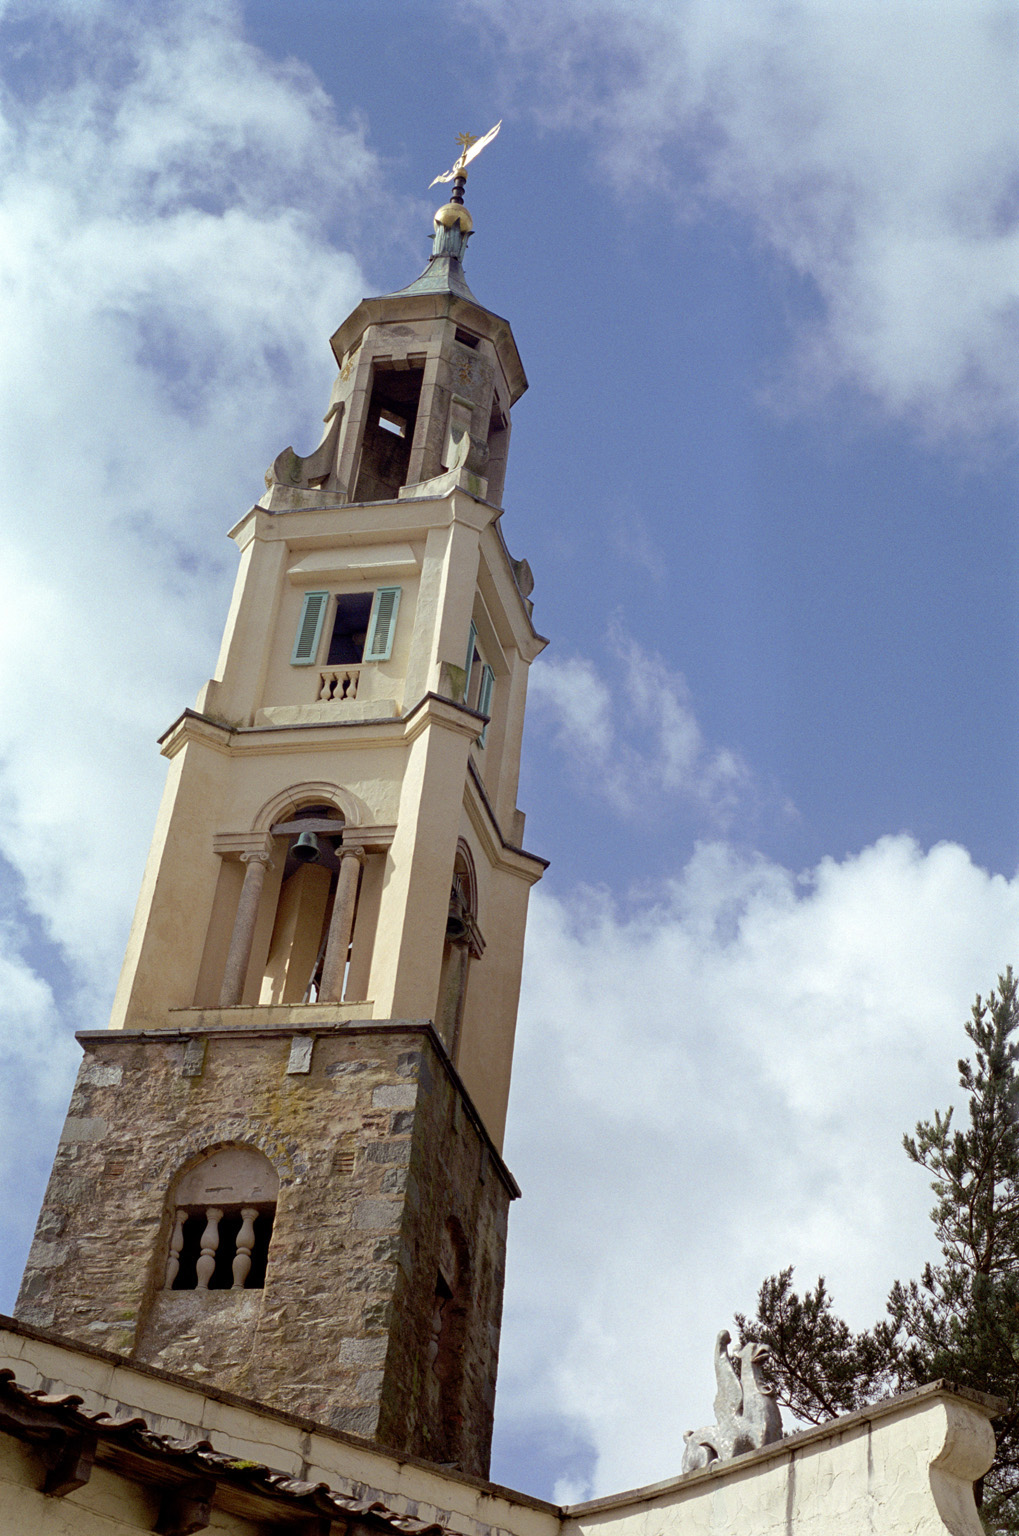 Exterior View of Famous Architectural Portmeirion Bell Tower in Gwenydd, Welsh, UK